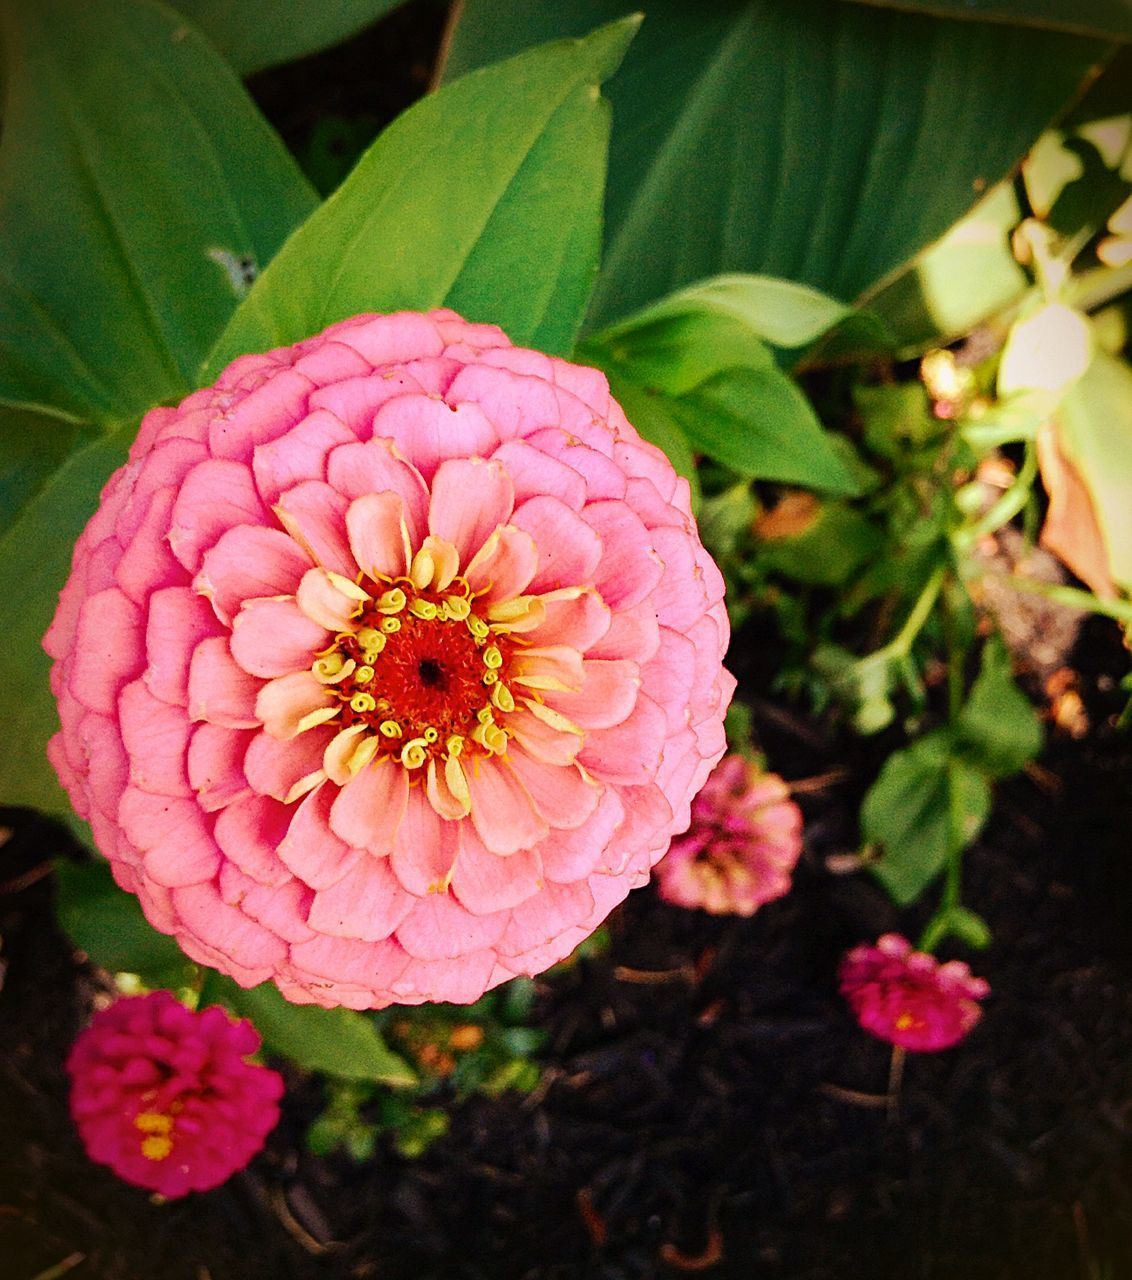 flower, petal, beauty in nature, nature, flower head, growth, fragility, freshness, pink color, plant, no people, blooming, outdoors, day, close-up, zinnia